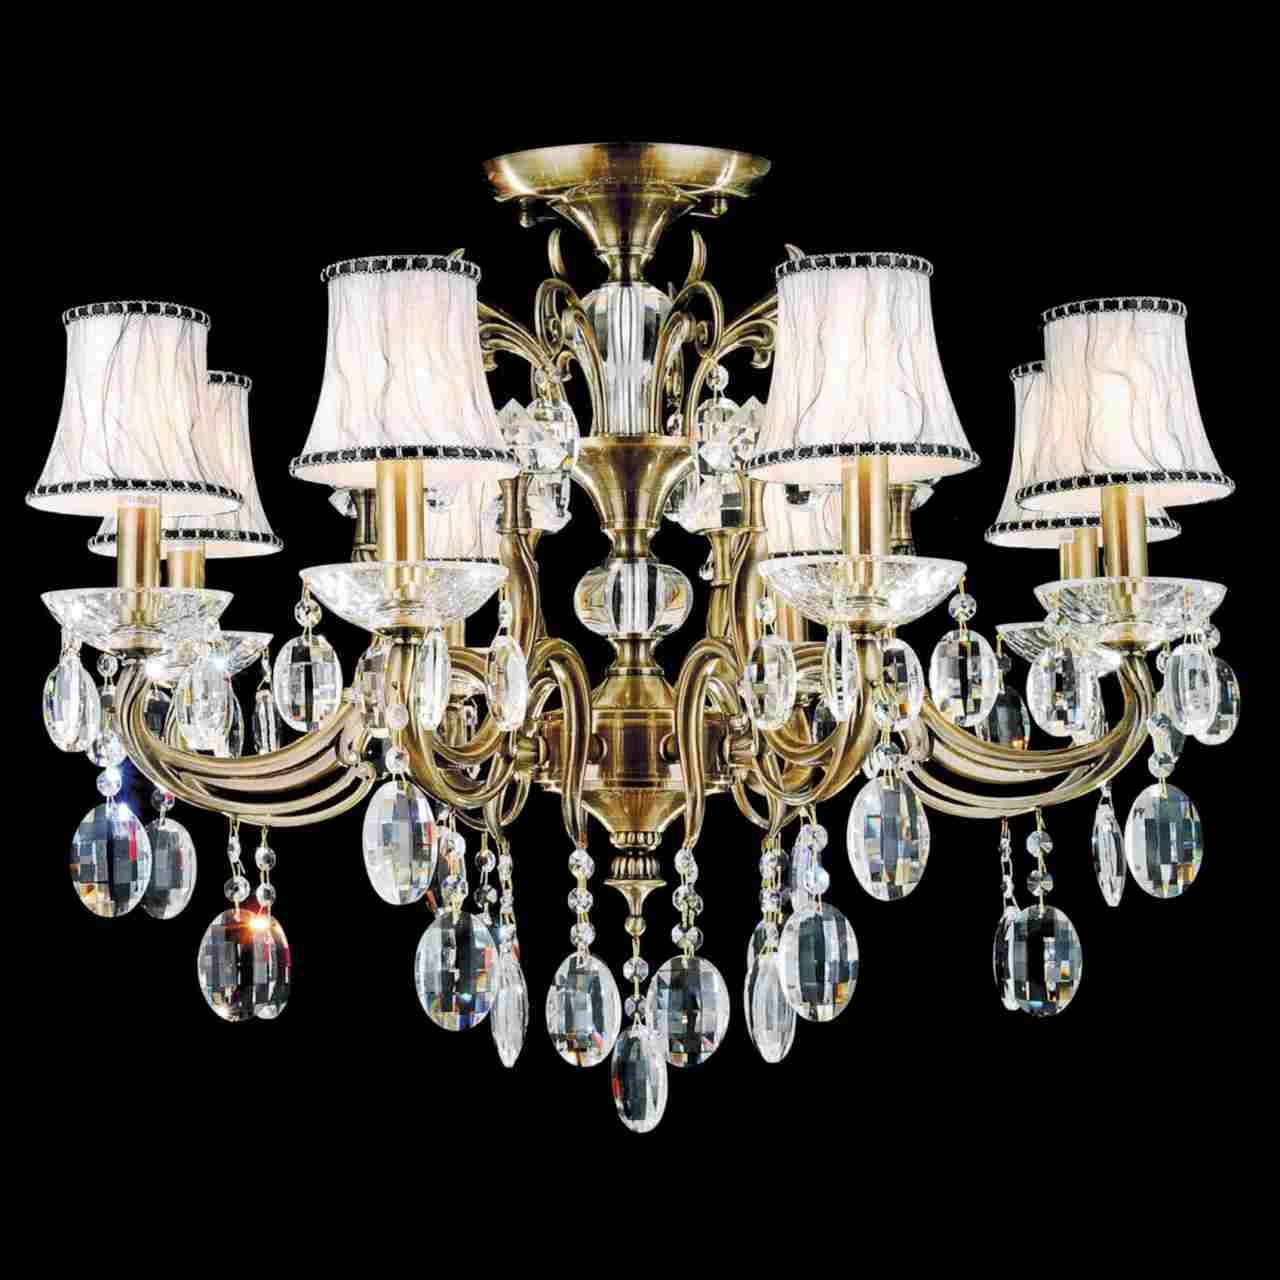 Brizzo Lighting Stores 30 Ottone Traditional Candle Round Flush Regarding Crystal And Brass Chandelier (View 14 of 15)